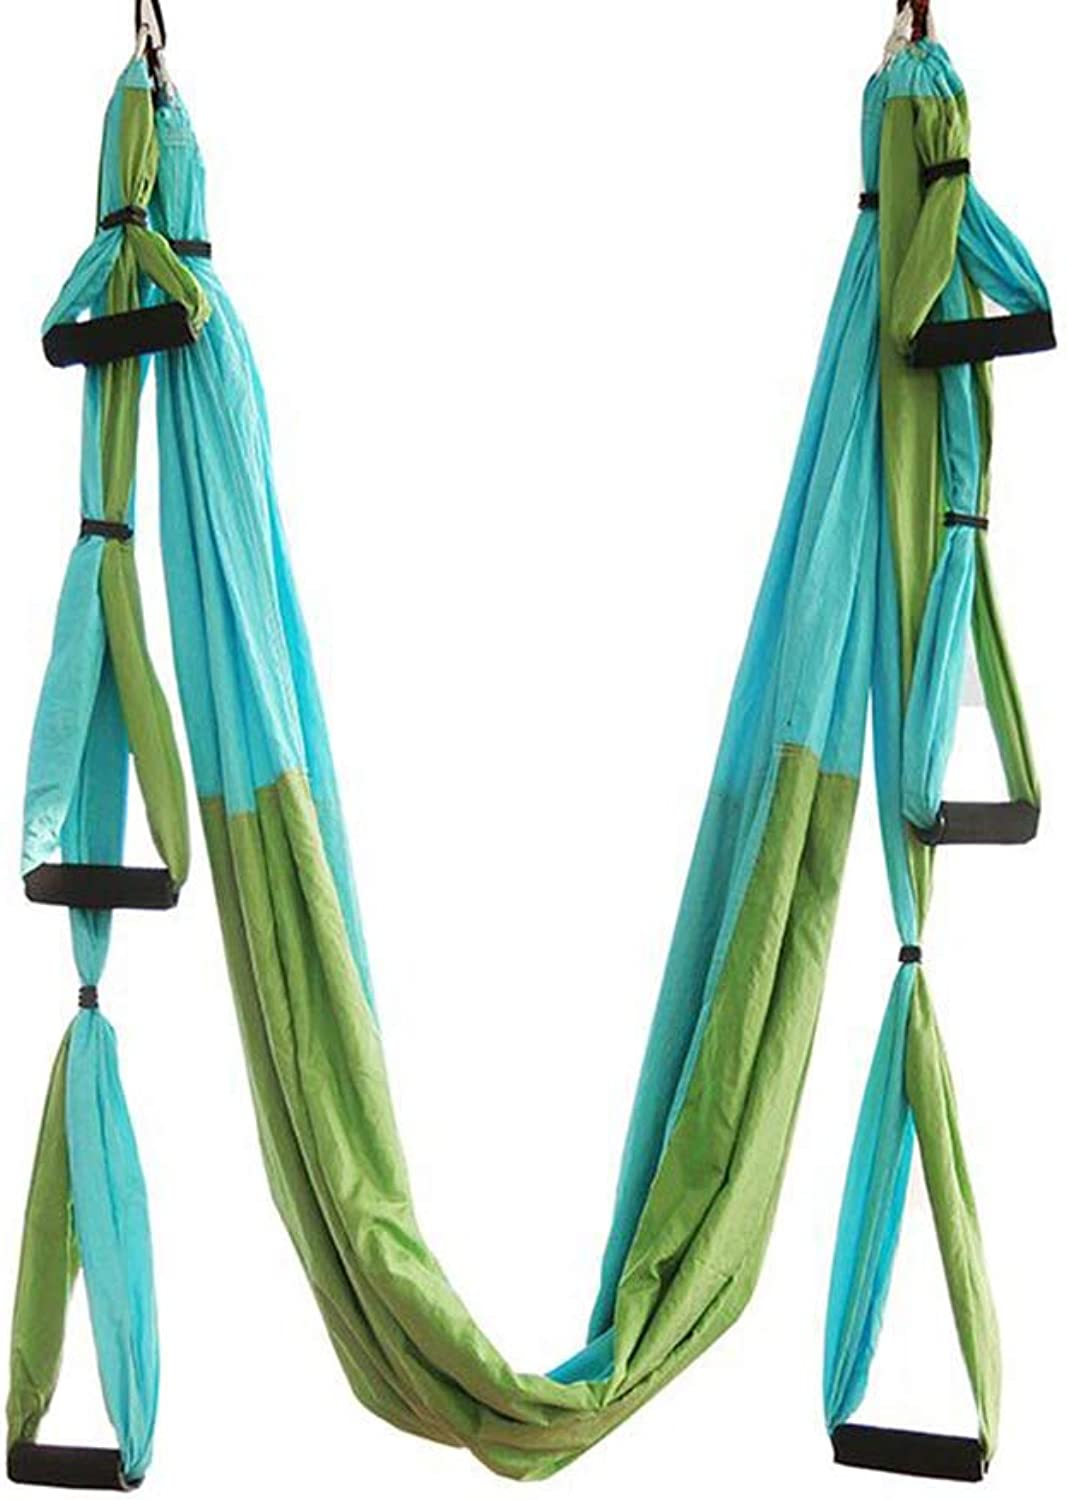 Aerial Yoga Hammock 6 HandleFree, Hong KongStyle Reverse Gravity Fitness Hammock with Extension Strap and Hanging Plate,D